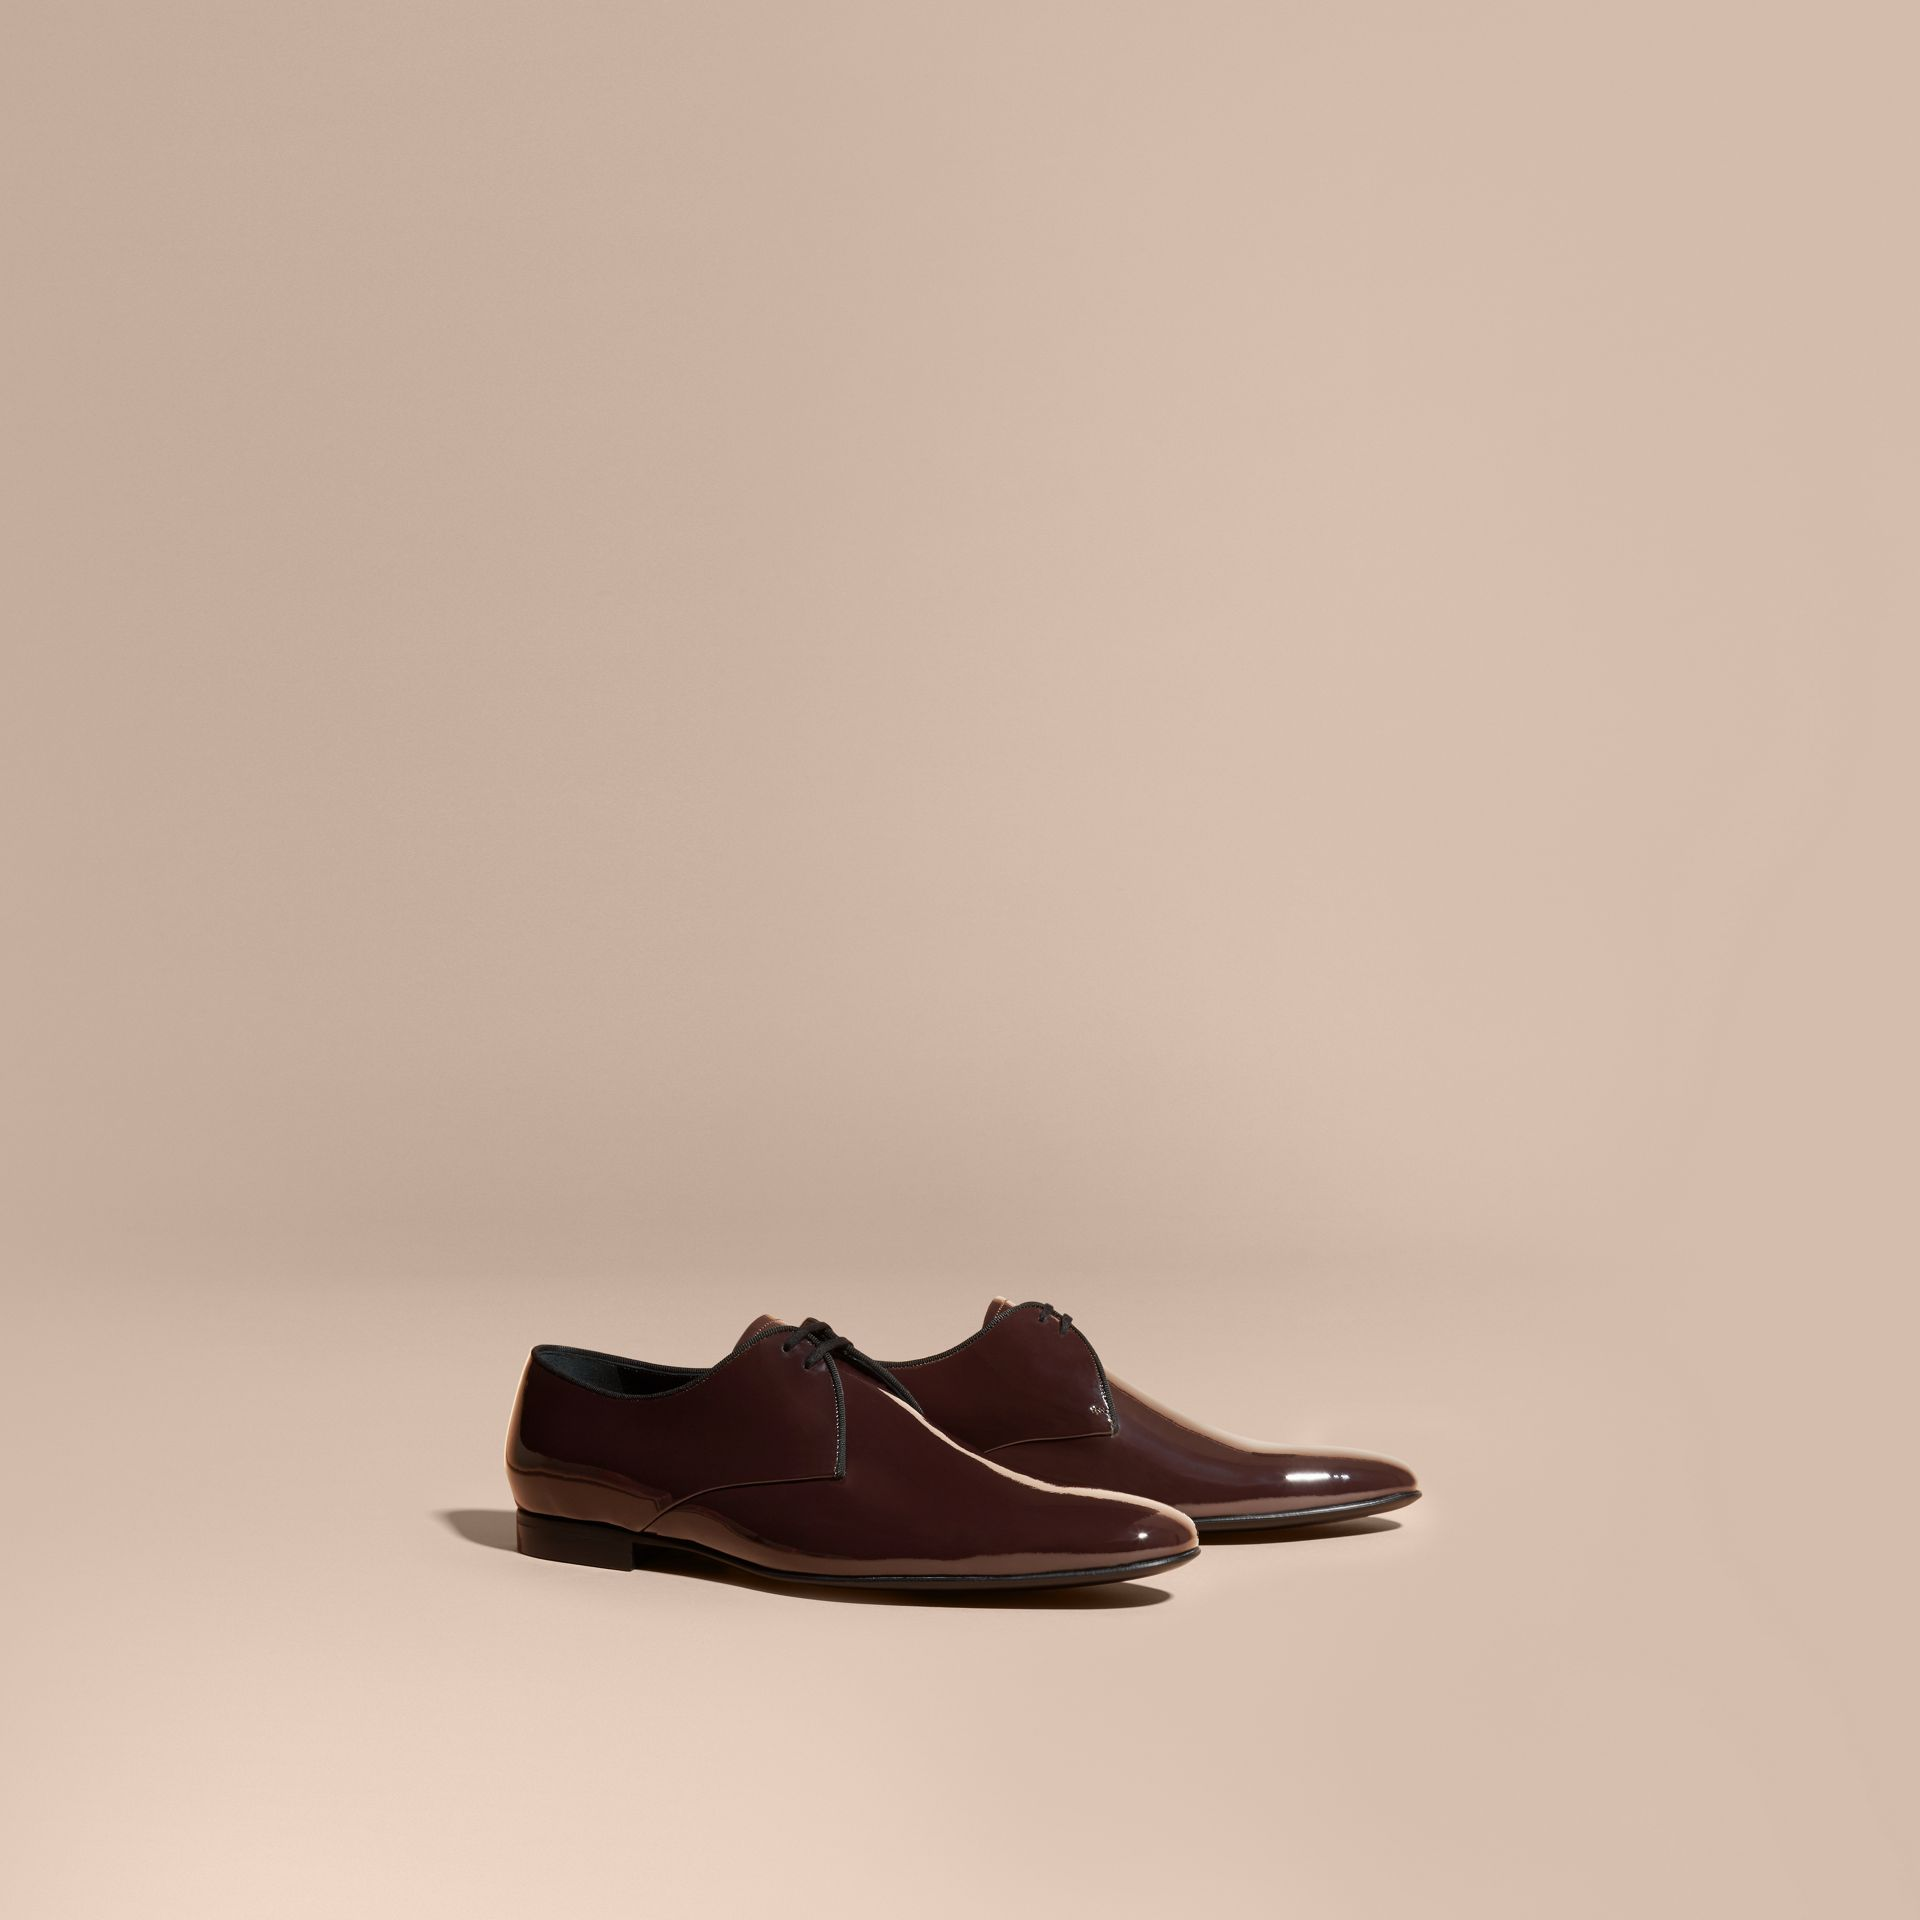 Dark claret Polished Leather Lace-up Shoes Dark Claret - gallery image 1